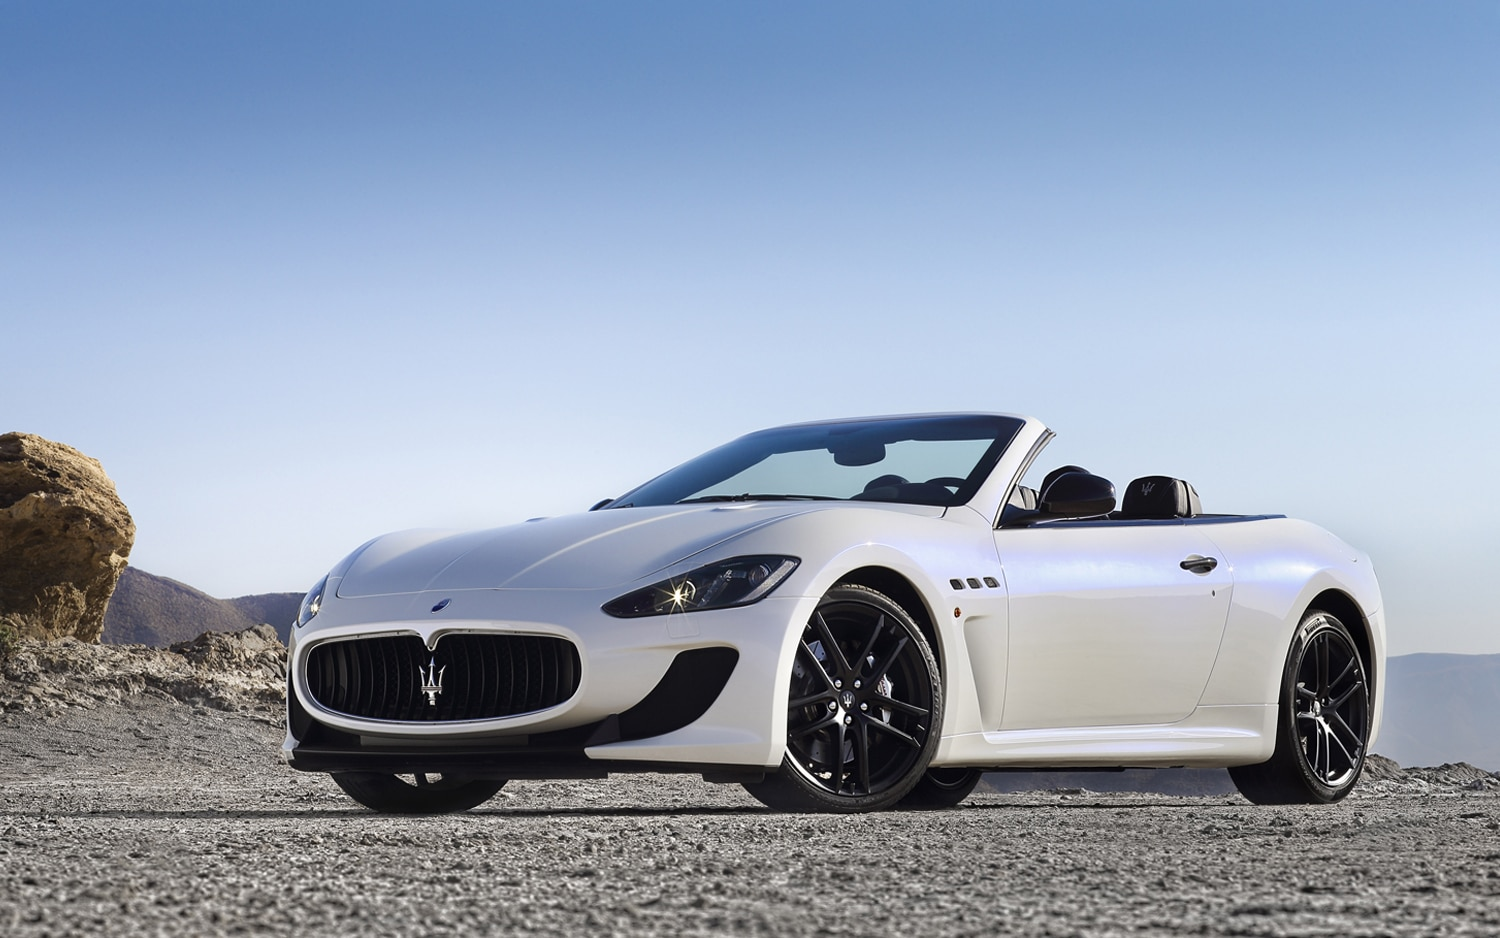 2013 Maserati GranCabrio MC Front Three Quarter 11